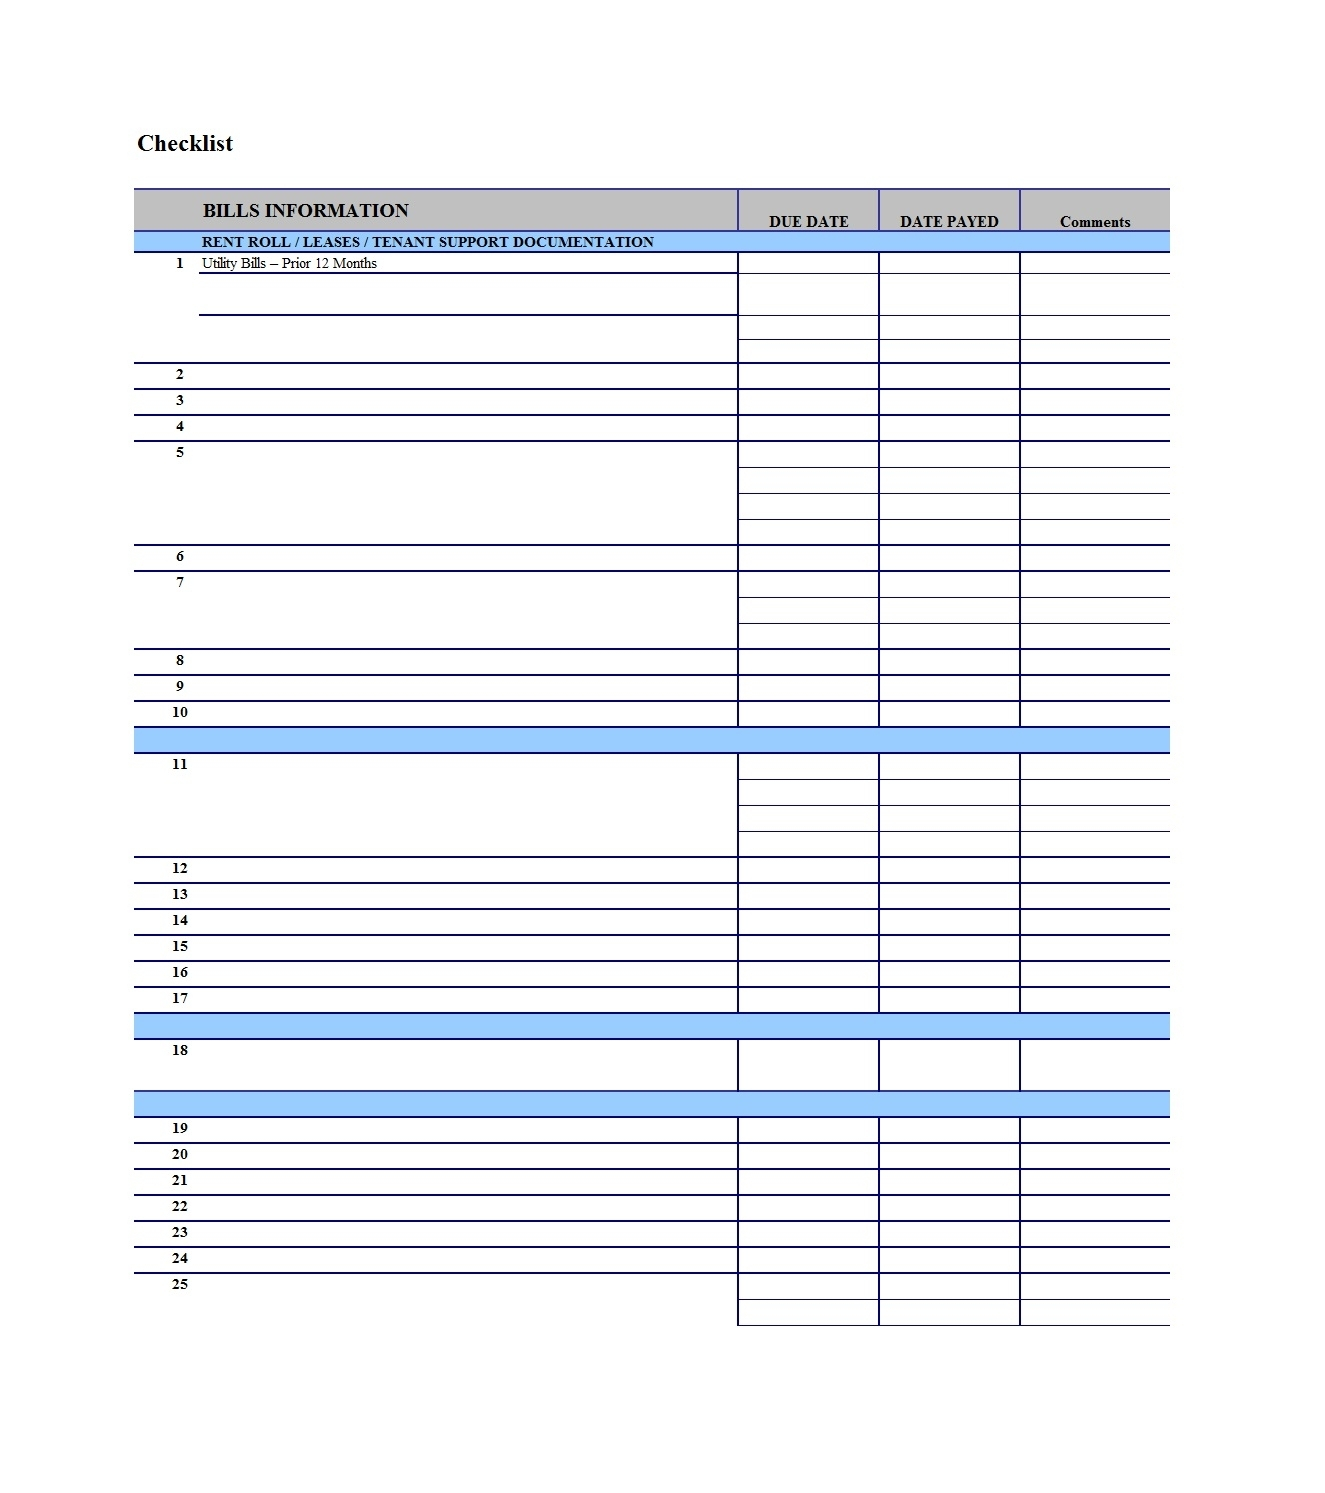 32 Free Bill Pay Checklists & Bill Calendars (Pdf, Word & Excel) throughout Blank Monthly Bills Calendar Printable